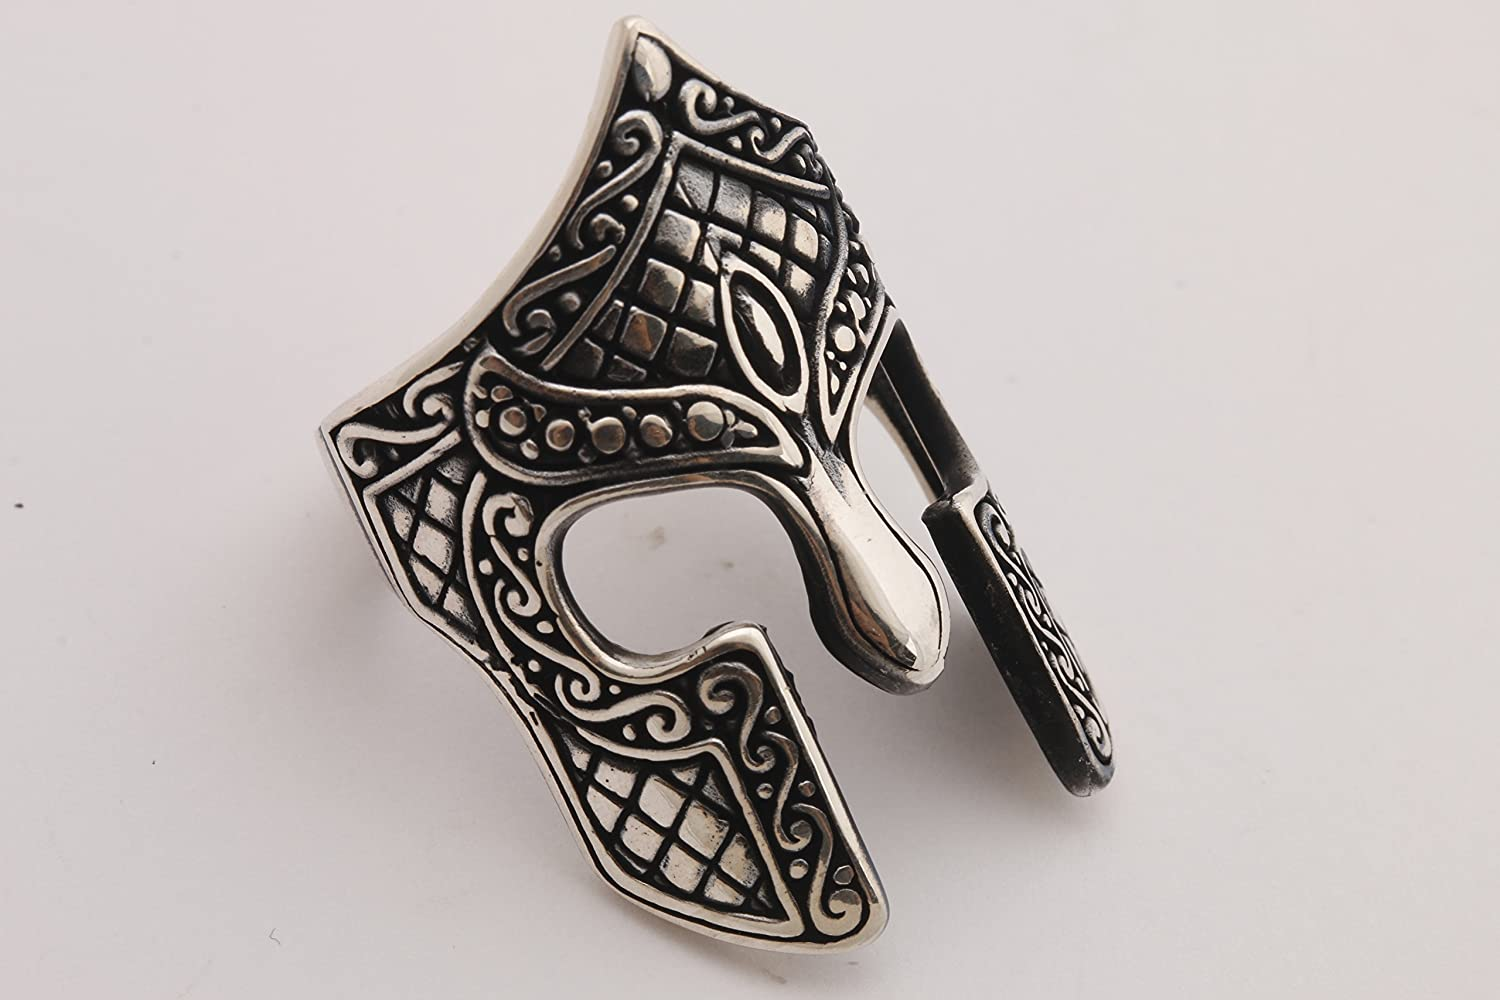 Turkish Handmade Jewelry Knight Helmet Symbol 925 Sterling Silver Mens Ring All Size Options Size